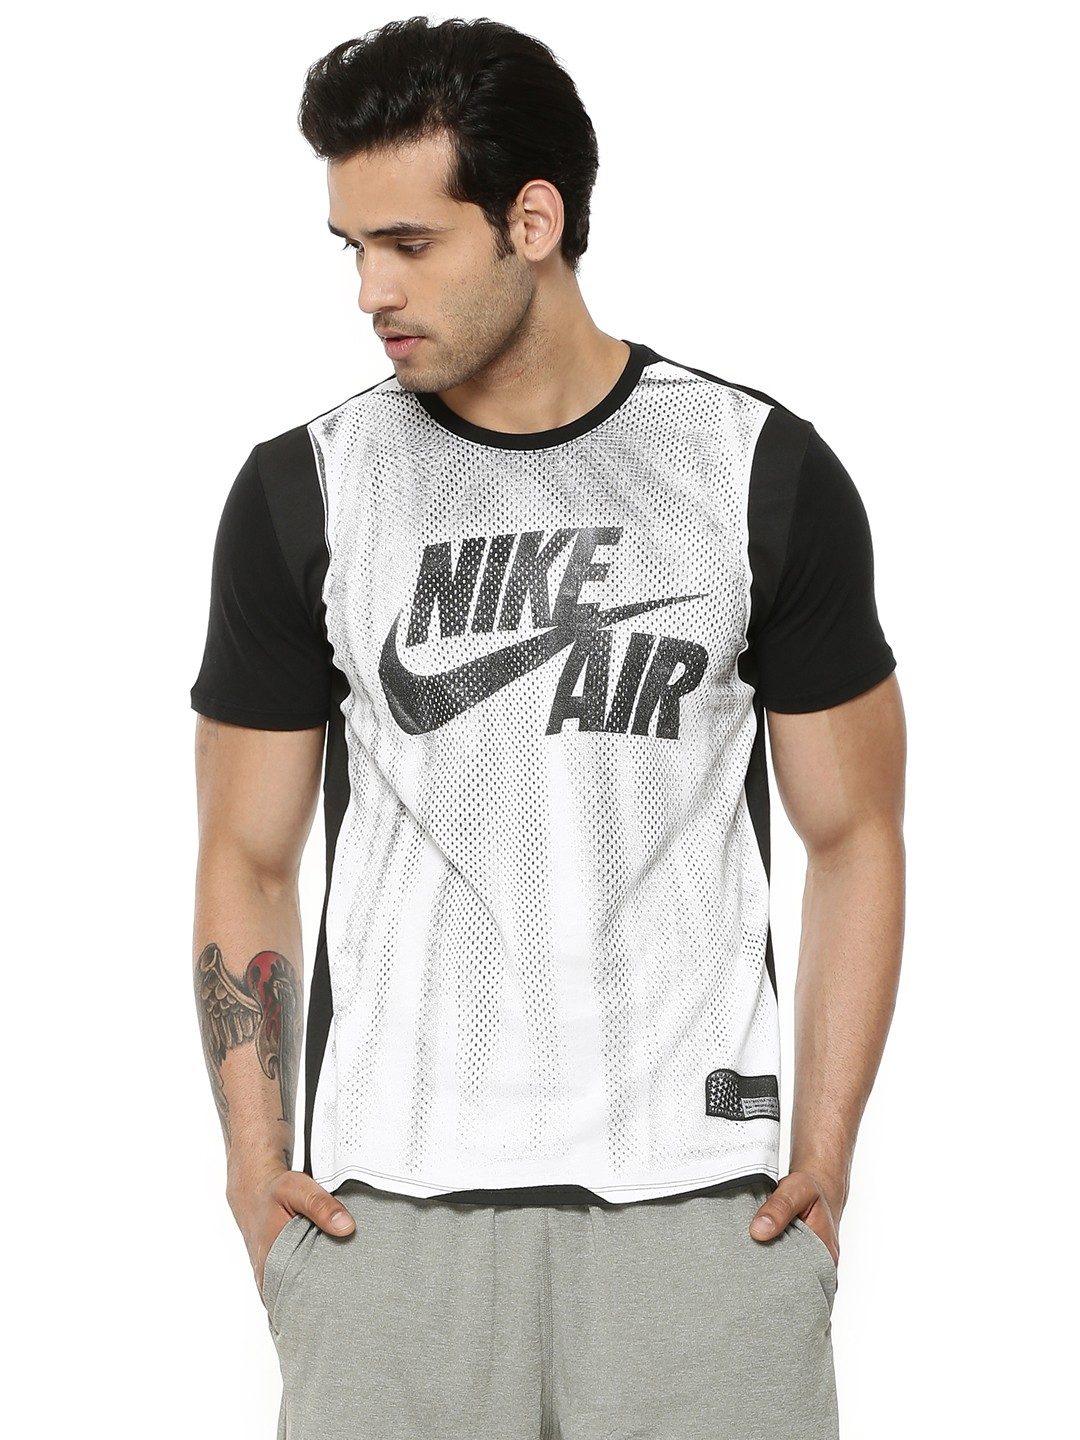 Buy nike jersey t shirt with dri fit for men men 39 s white for Buy dri fit shirts